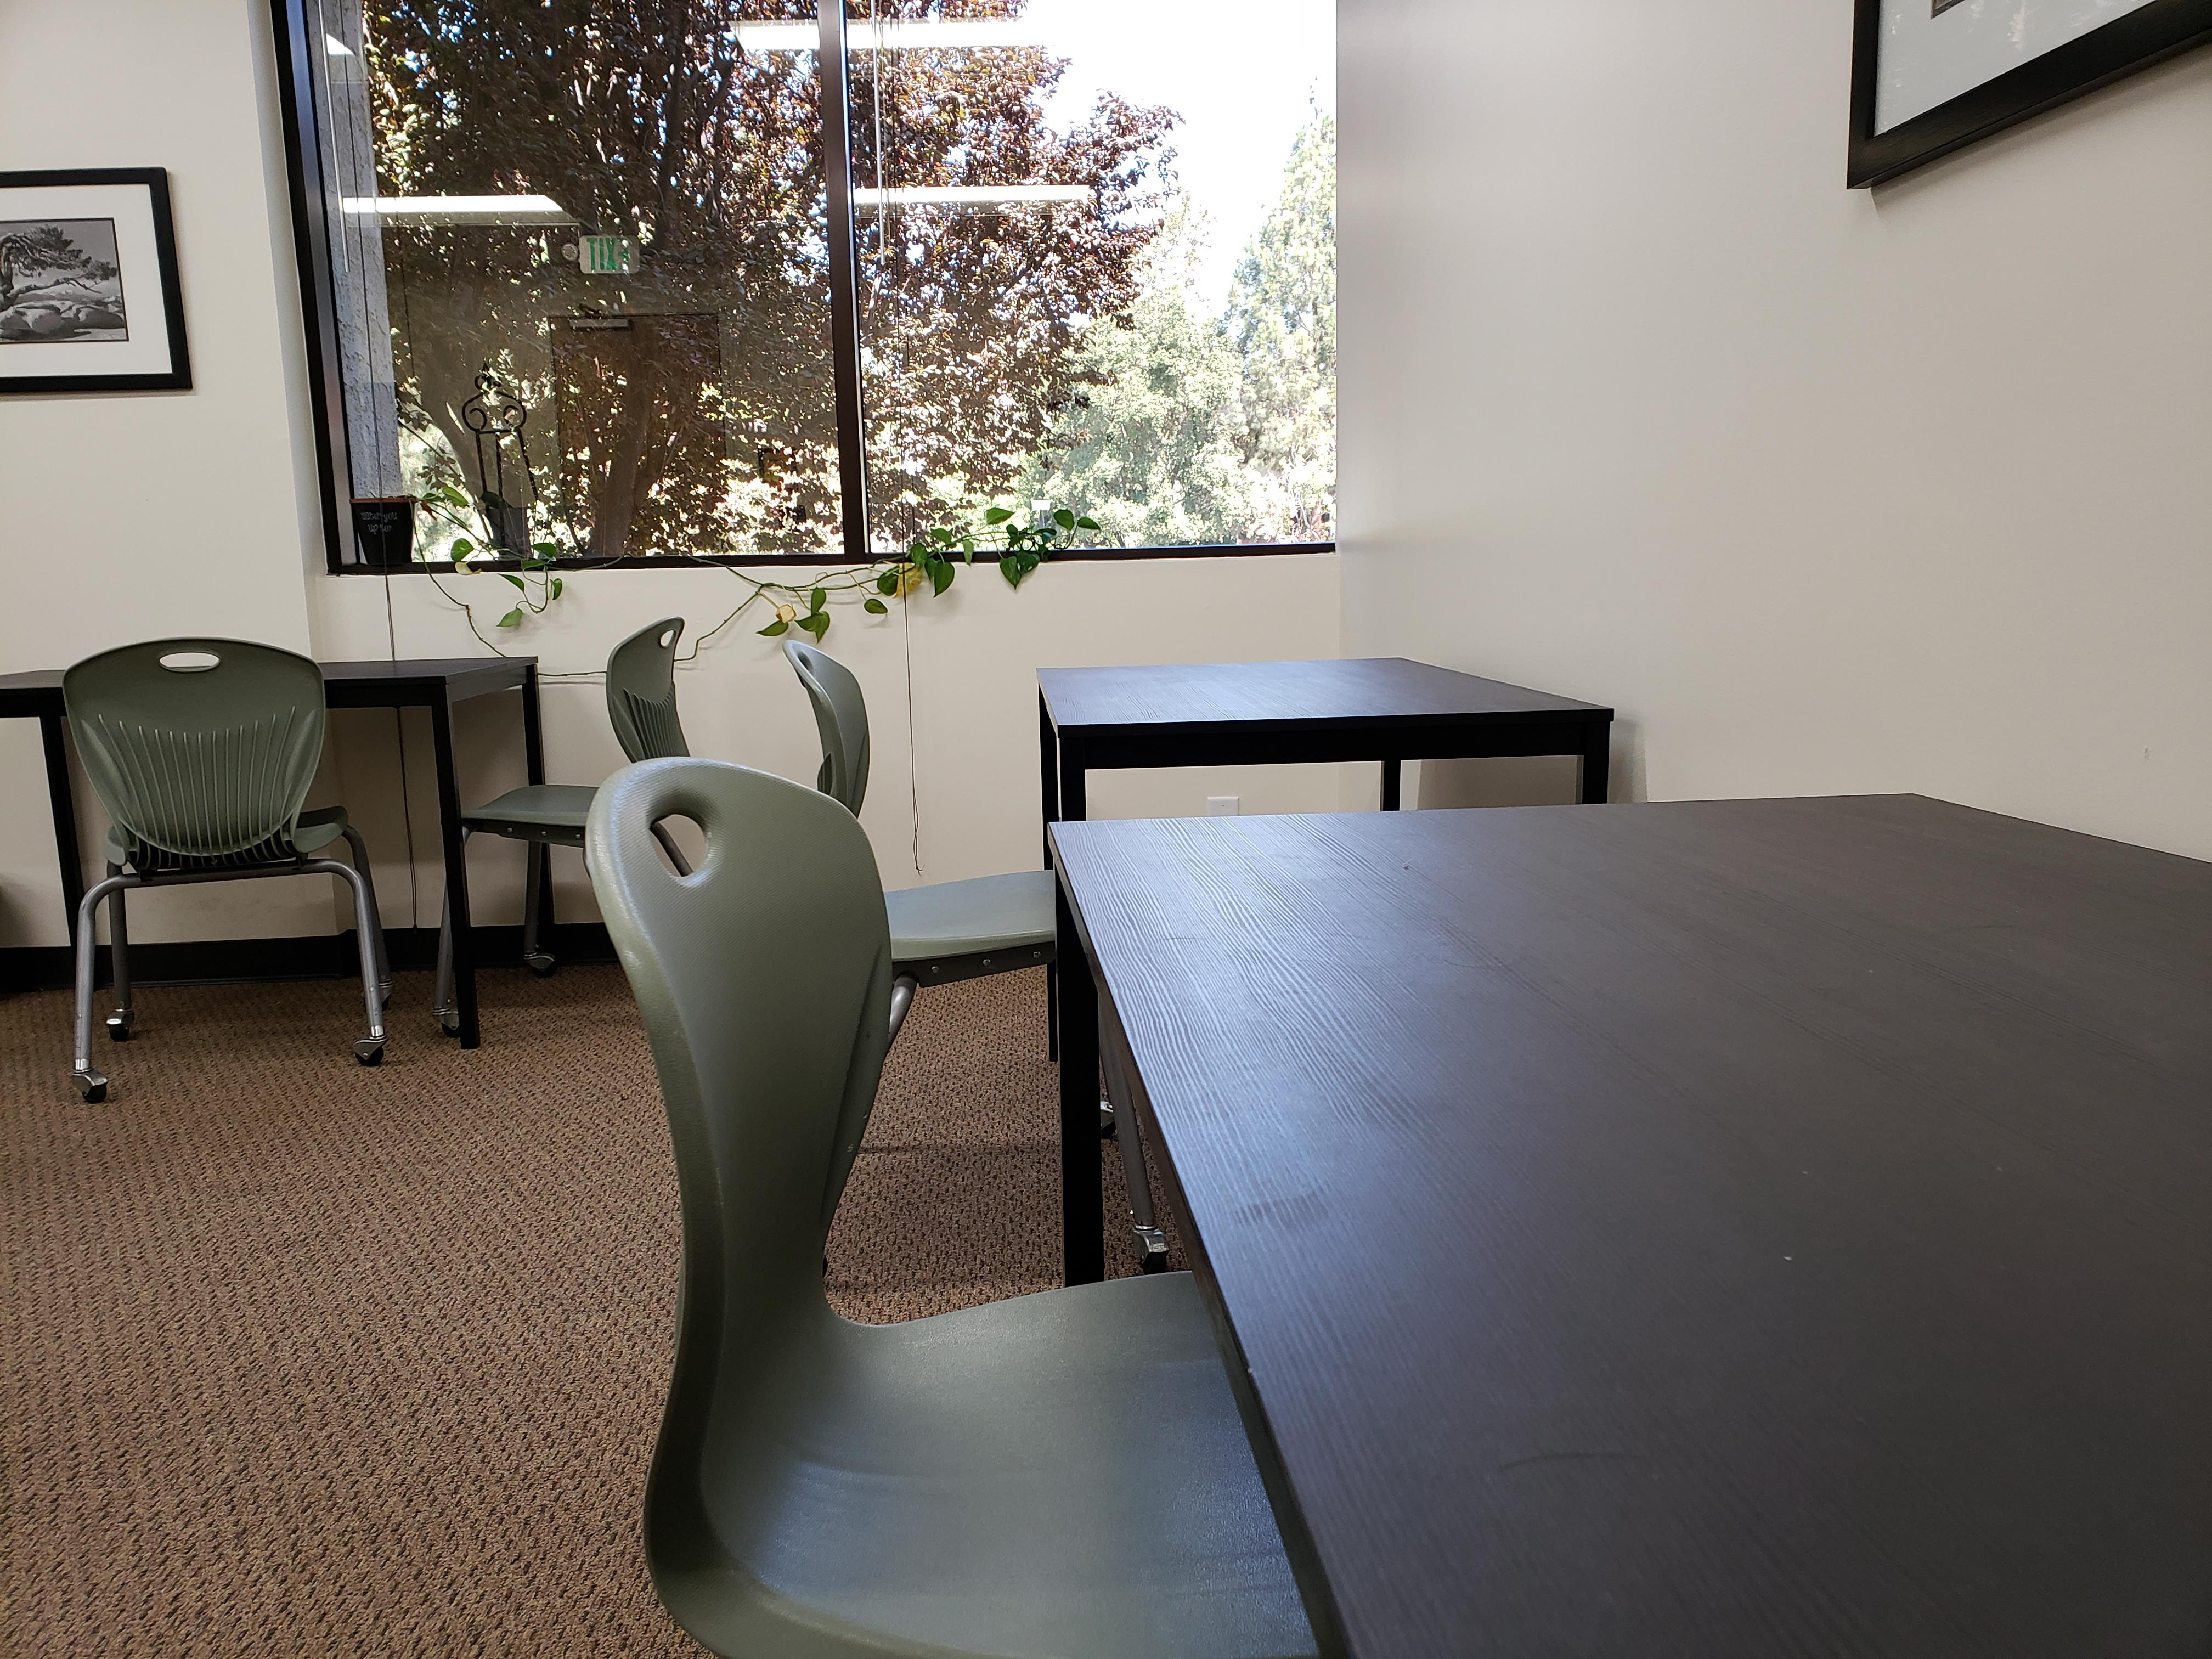 officeLOCALE Coworking Space and Business Center - officeBOX Membership with Flex Desks